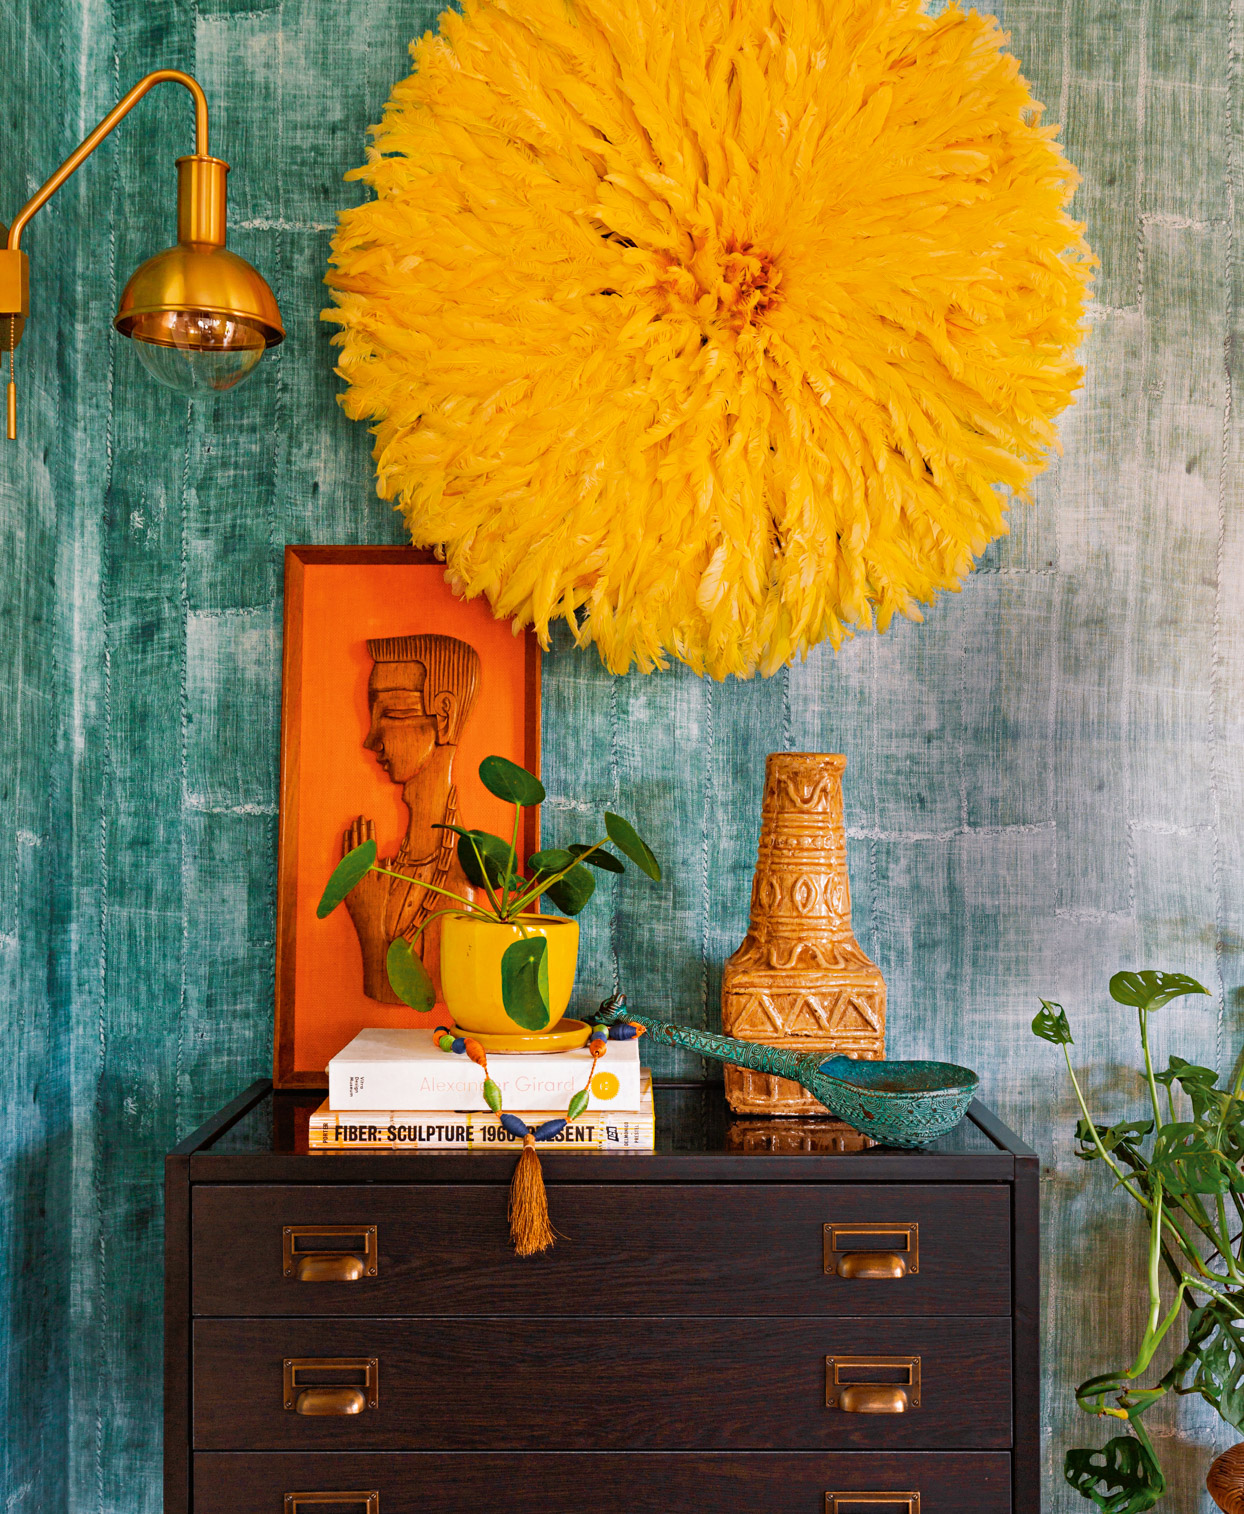 paint brushes with color and pattern swatches